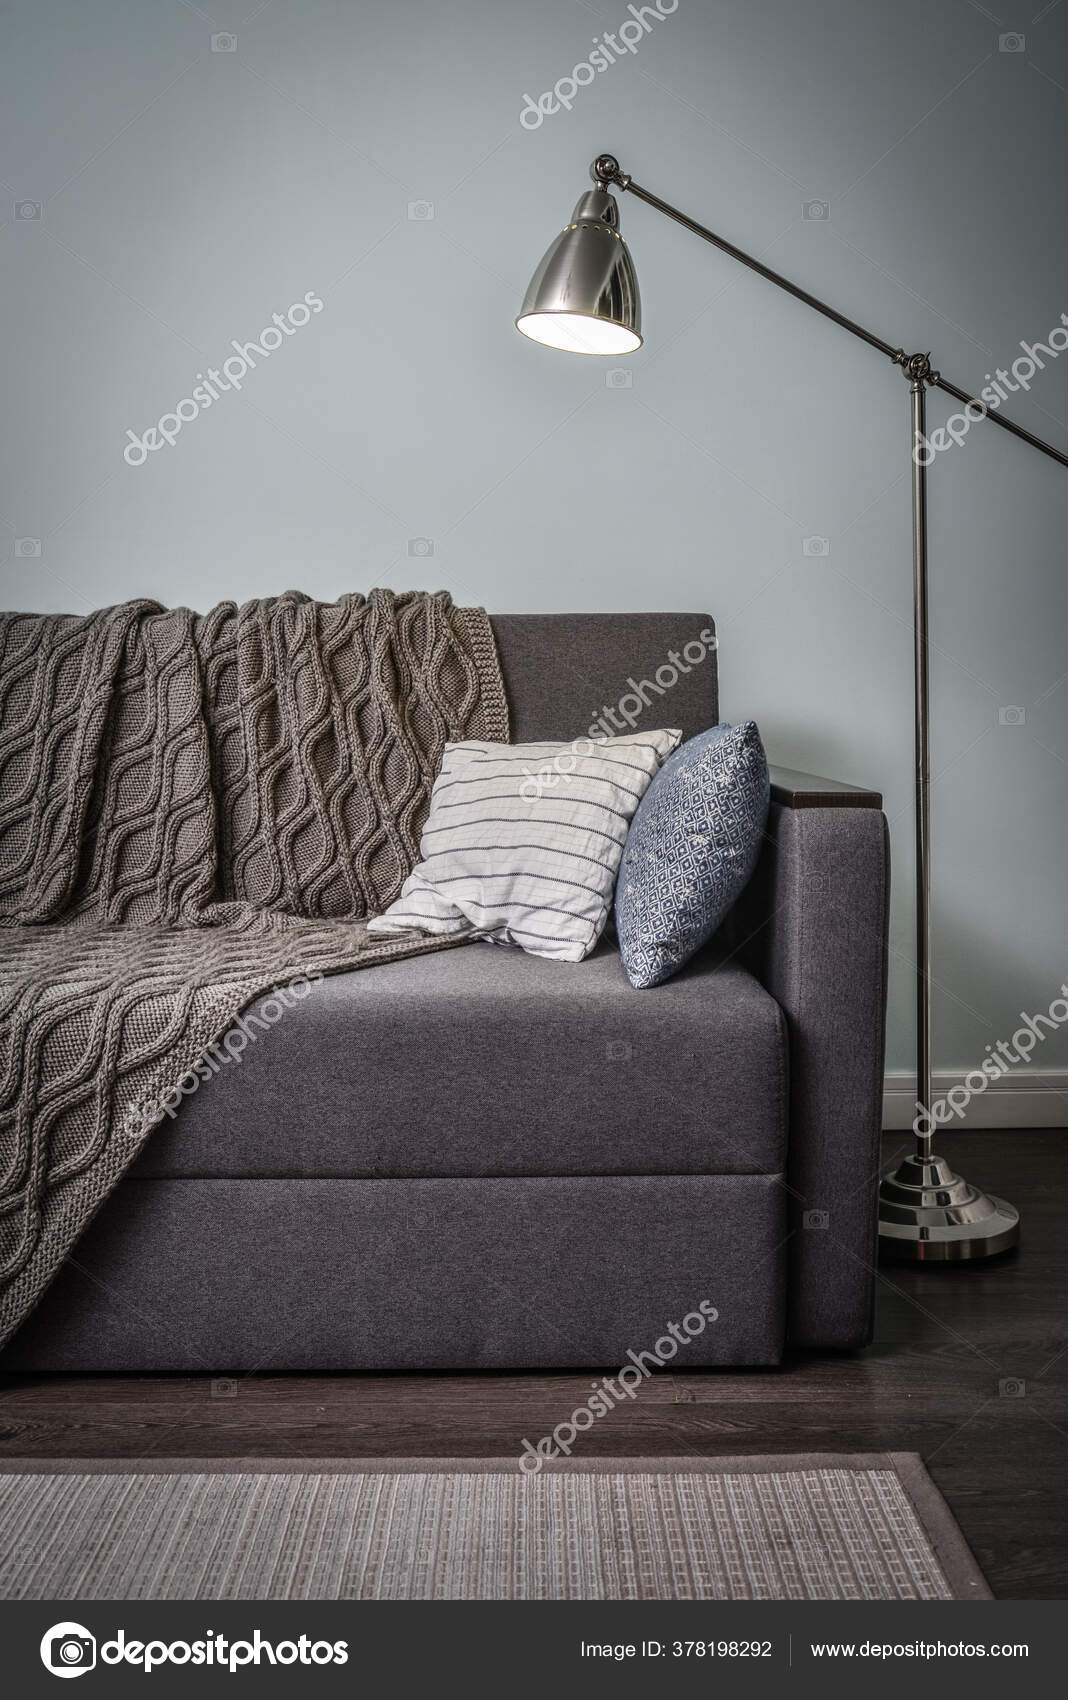 Picture of: Grey Couch Cushions Knitted Plaid Floor Lamp Room Blue Walls Stock Photo C Tashka2000 378198292